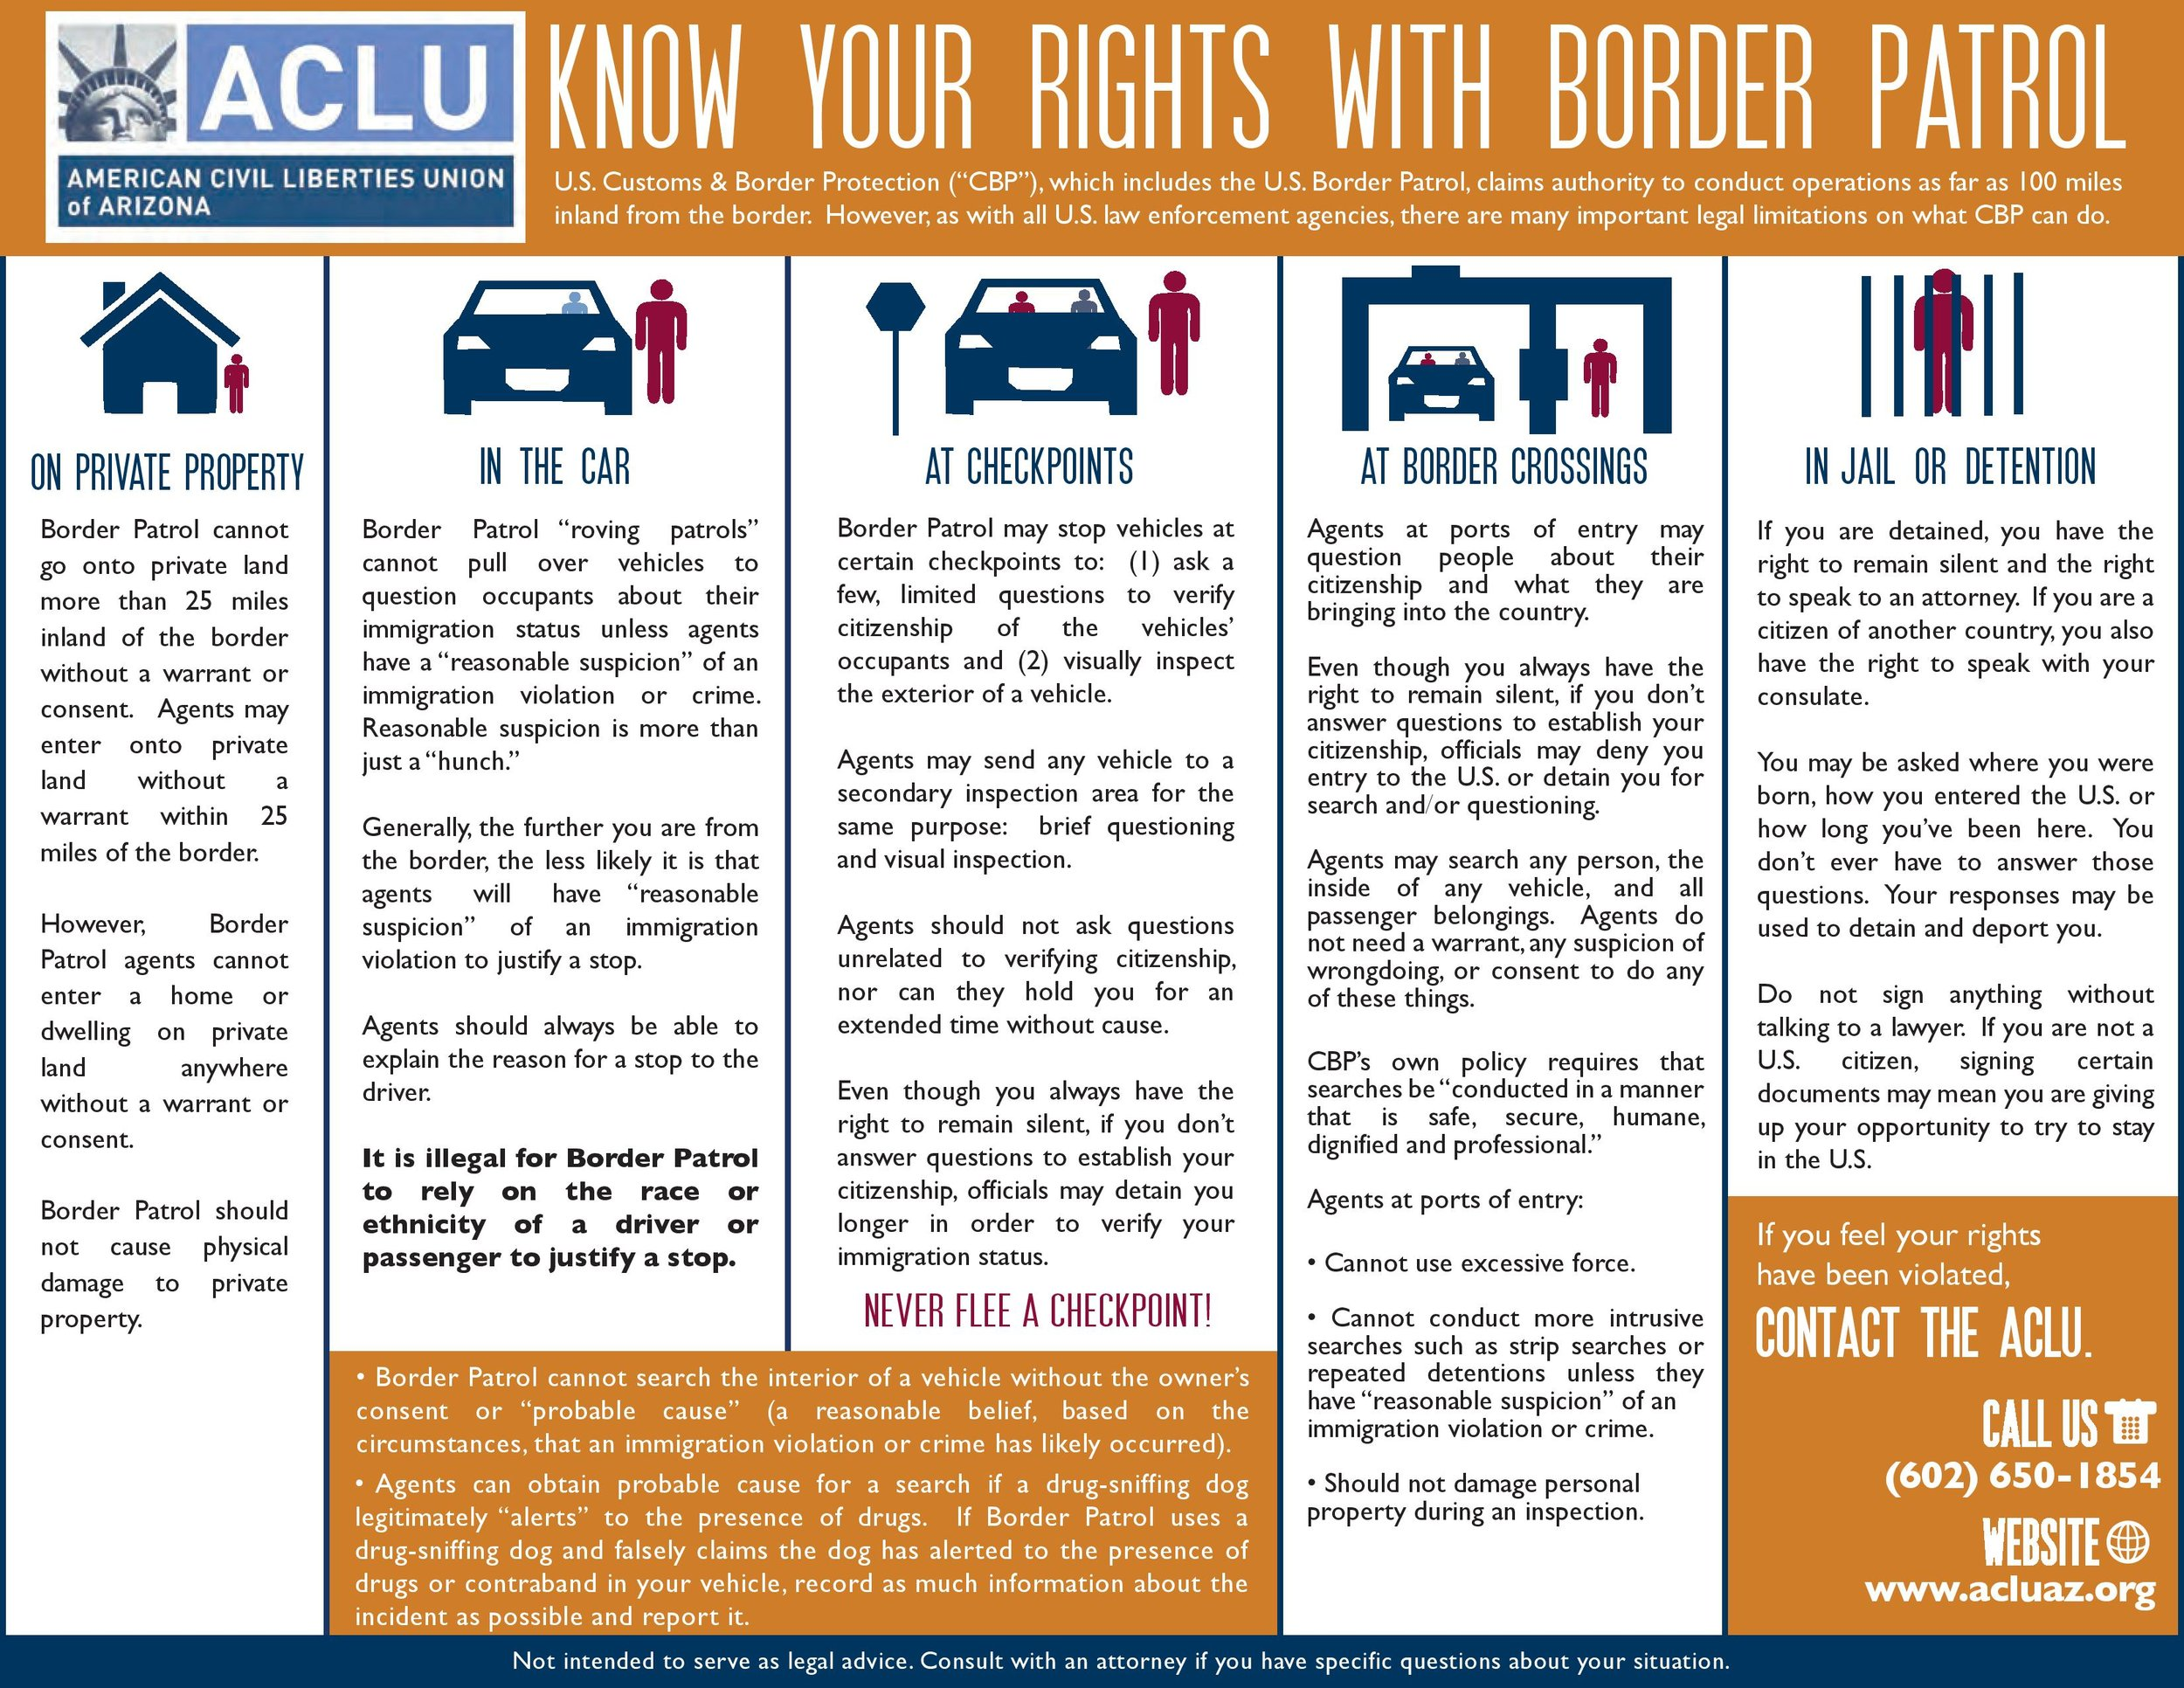 aclu_border_rights-page-001.jpg